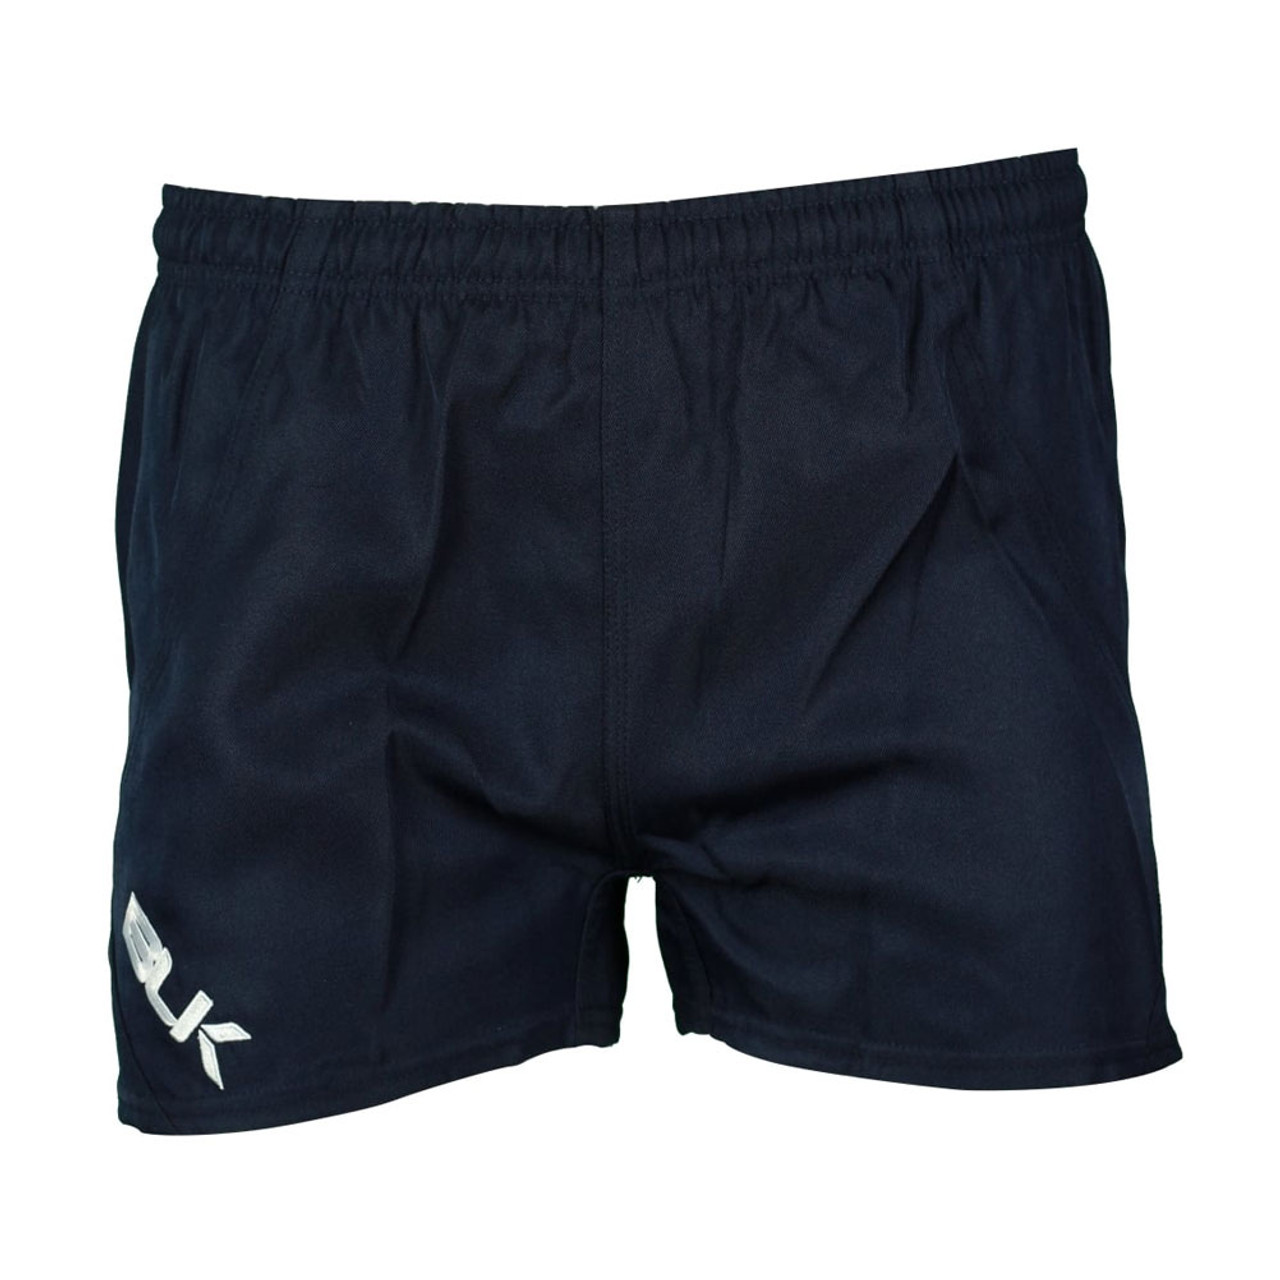 Made in the USA Size Adult X Large 40-42 Gymnastic Shorts Navy Eagle